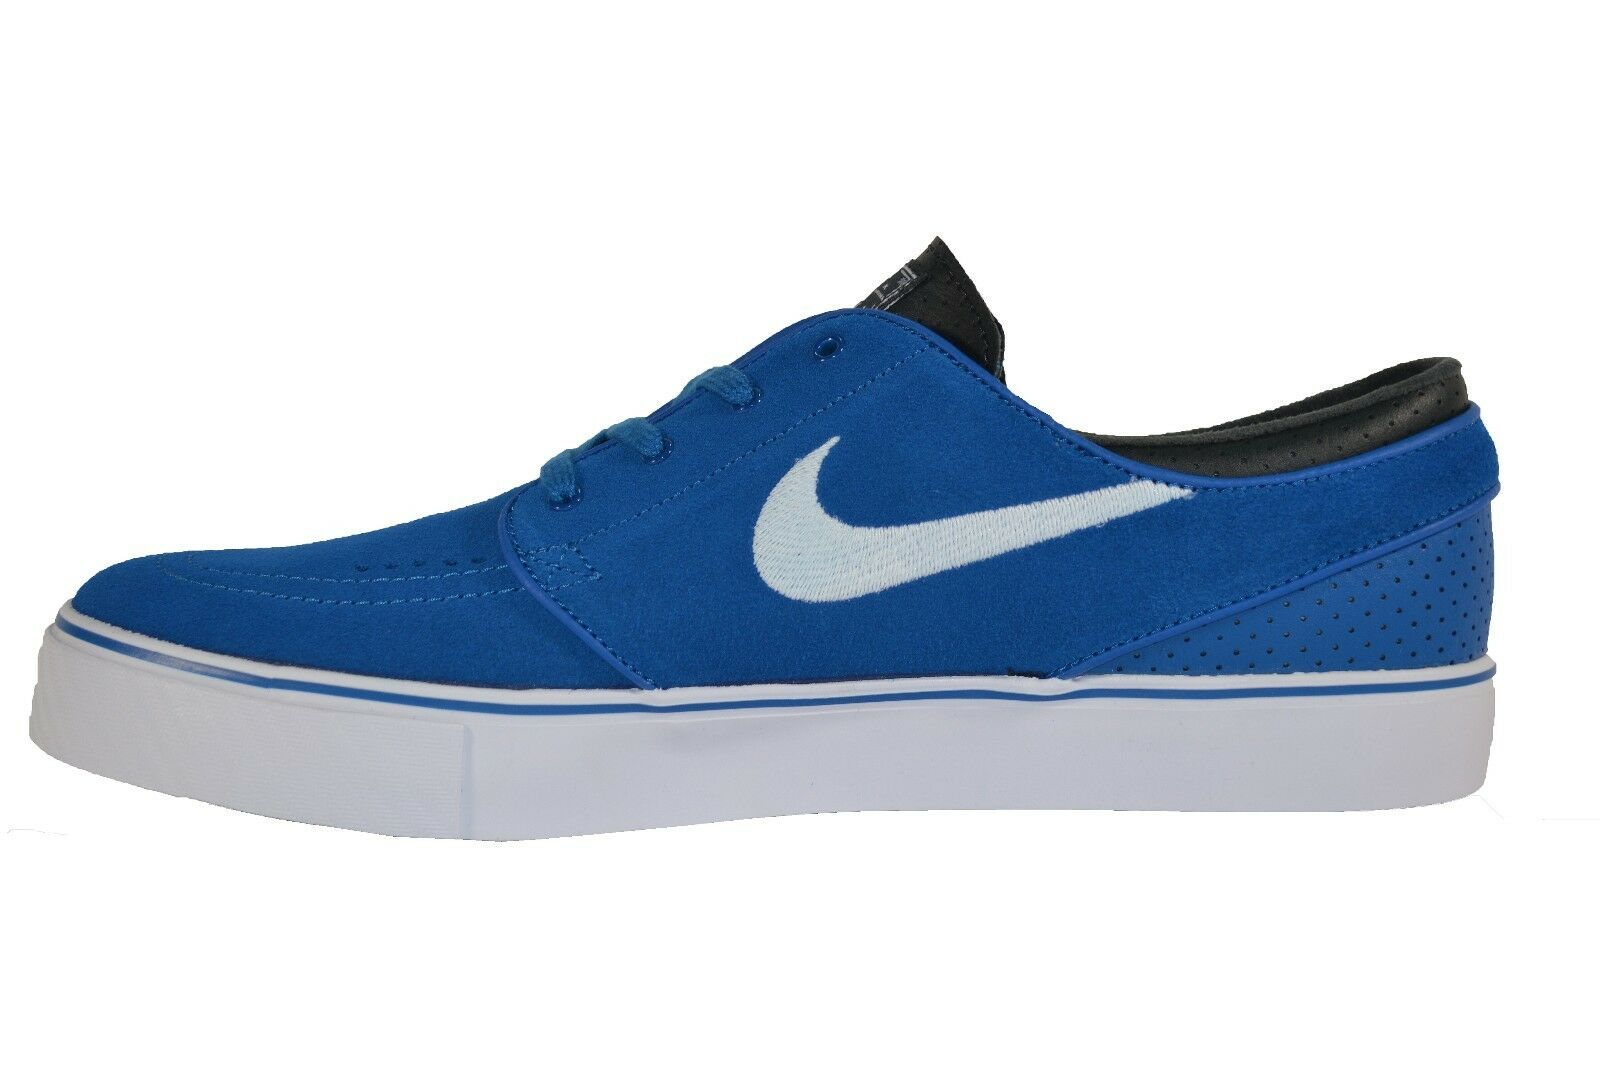 Nike ZOOM STEFAN JANOSKI Military bluee White Anthracite Black (405) Men's shoes